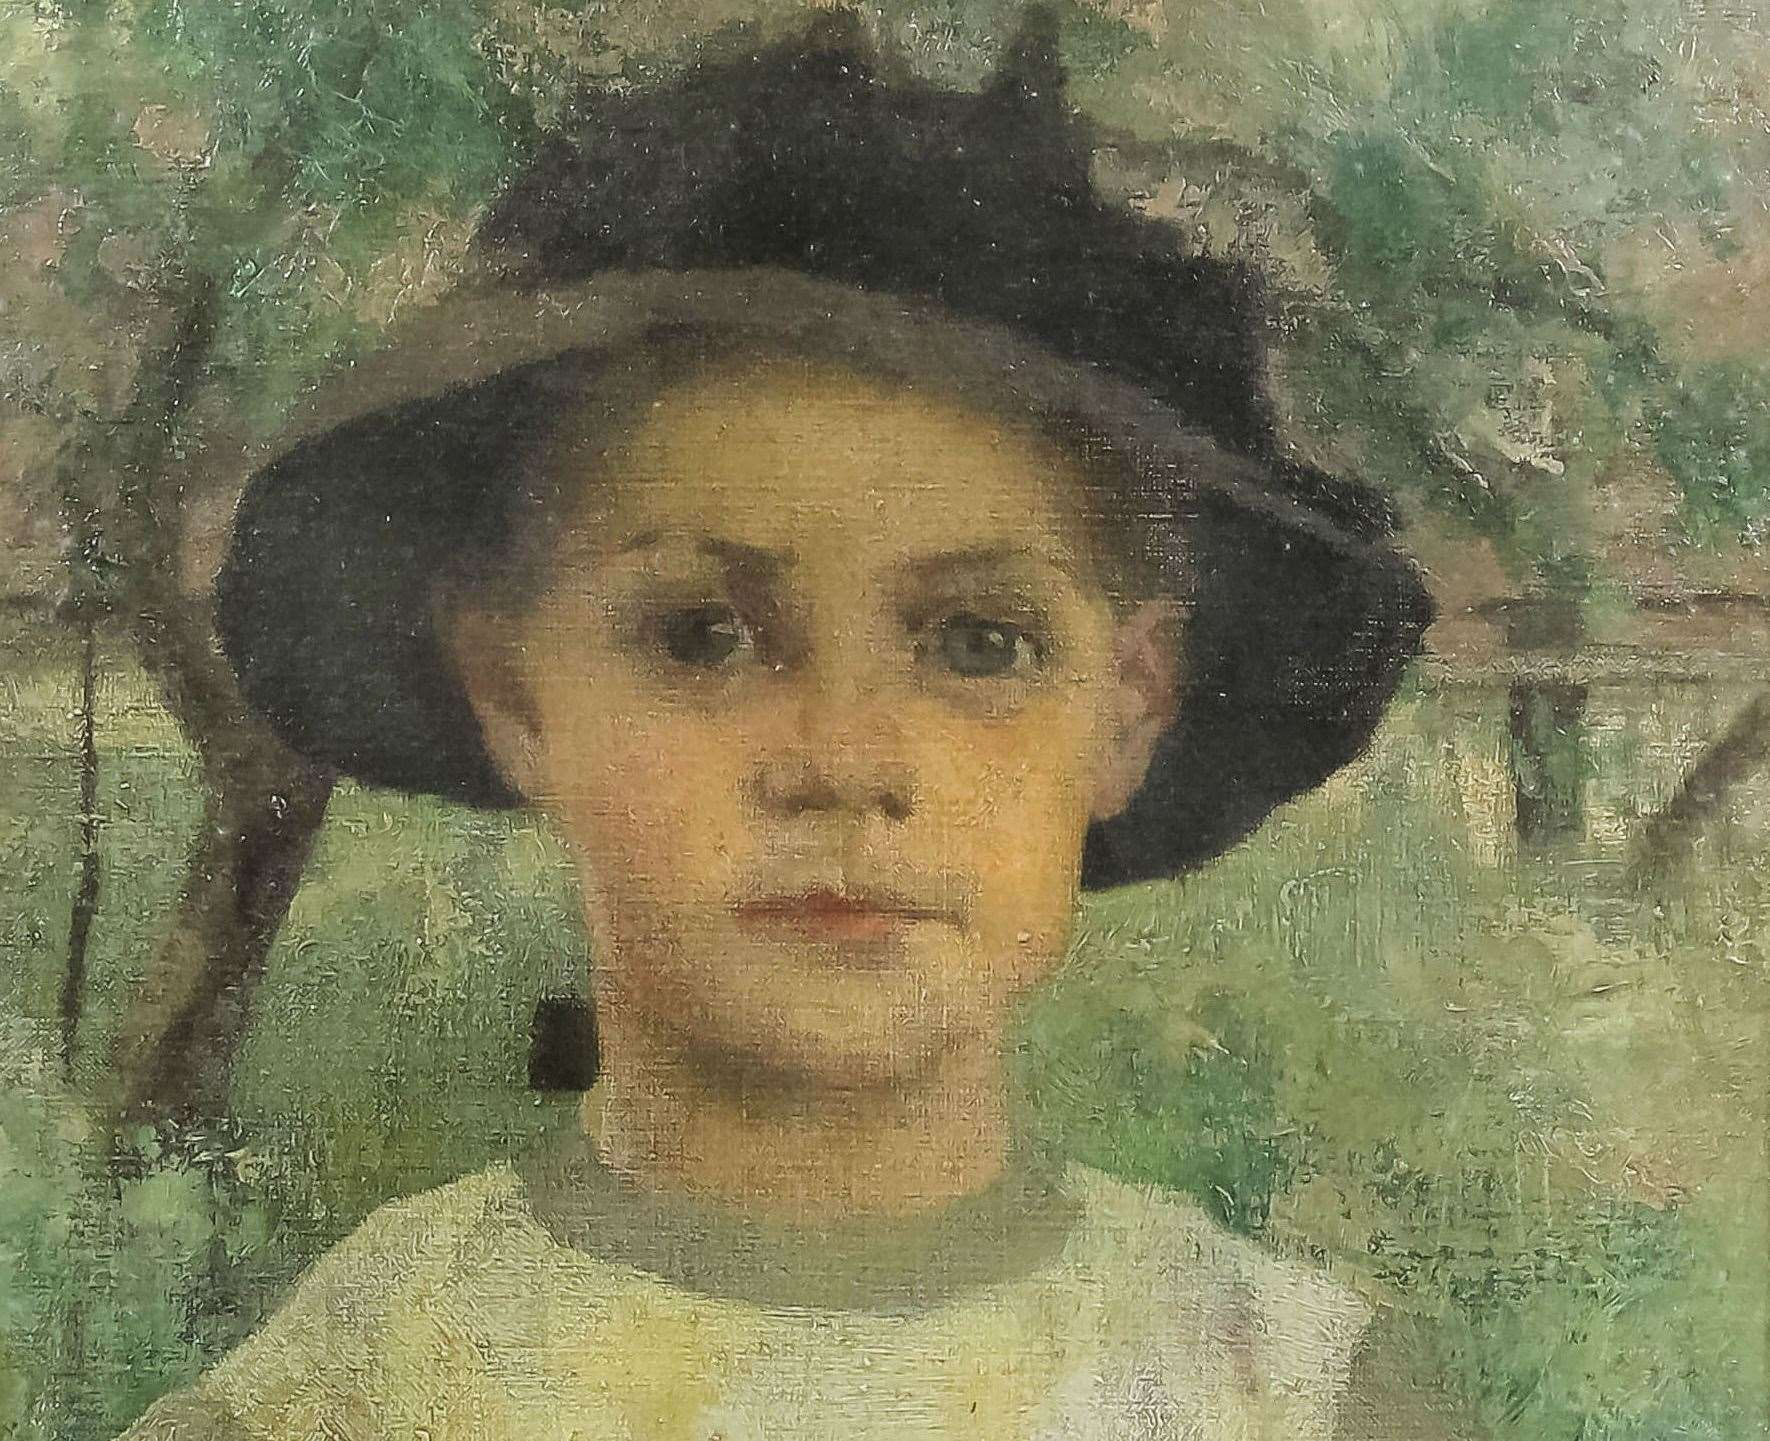 A portrait in oils by Maurice William Greiffenhagen sold for £24,000, a world record for the artist